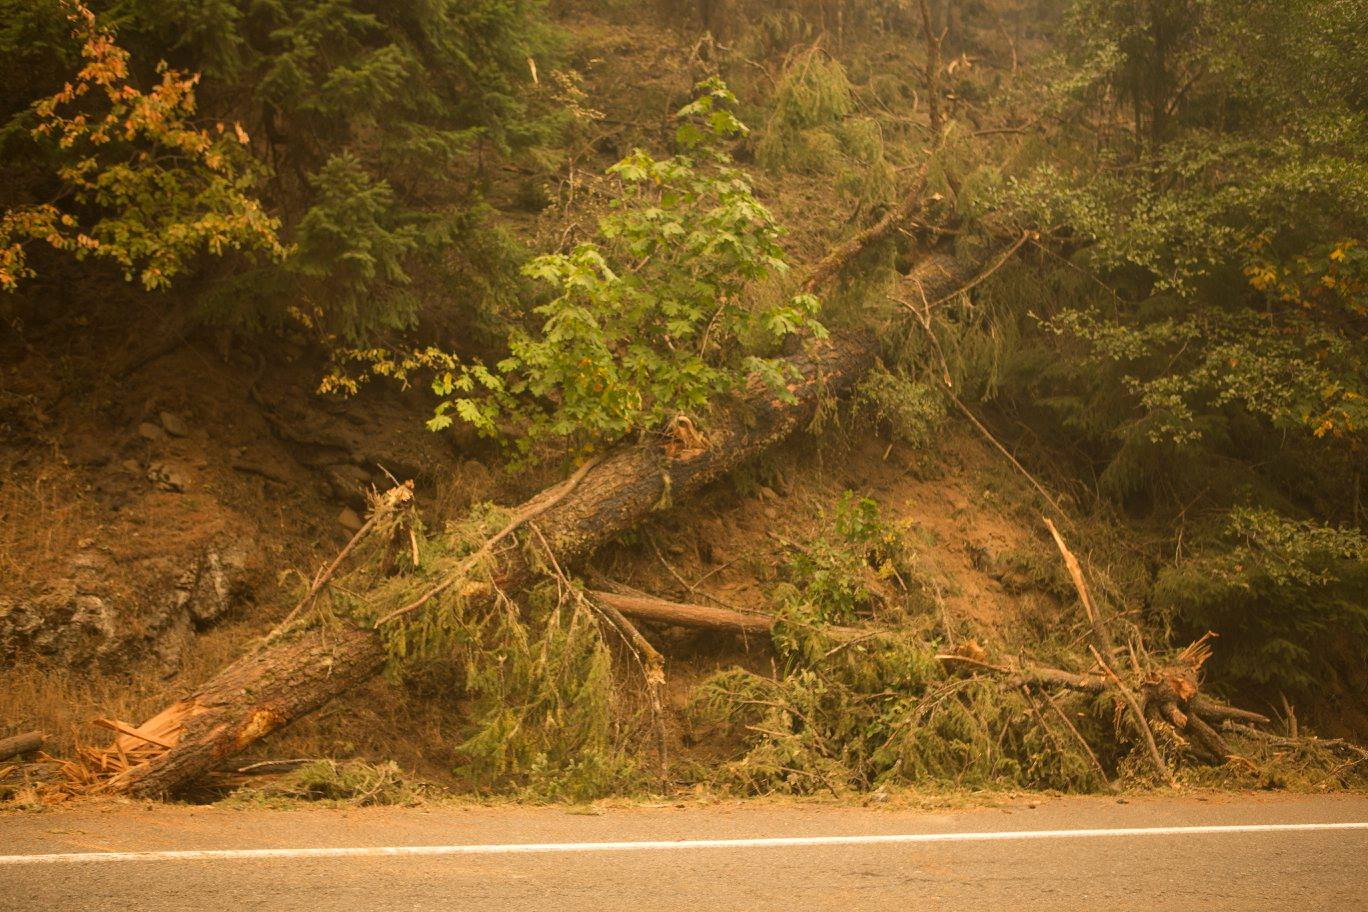 Trees and debris on Highway 138 East on the Umpqua North Complex in the Umpqua National Forest on Friday, Sept. 1, 2017. (Kari Greer/U.S. Forest Service)